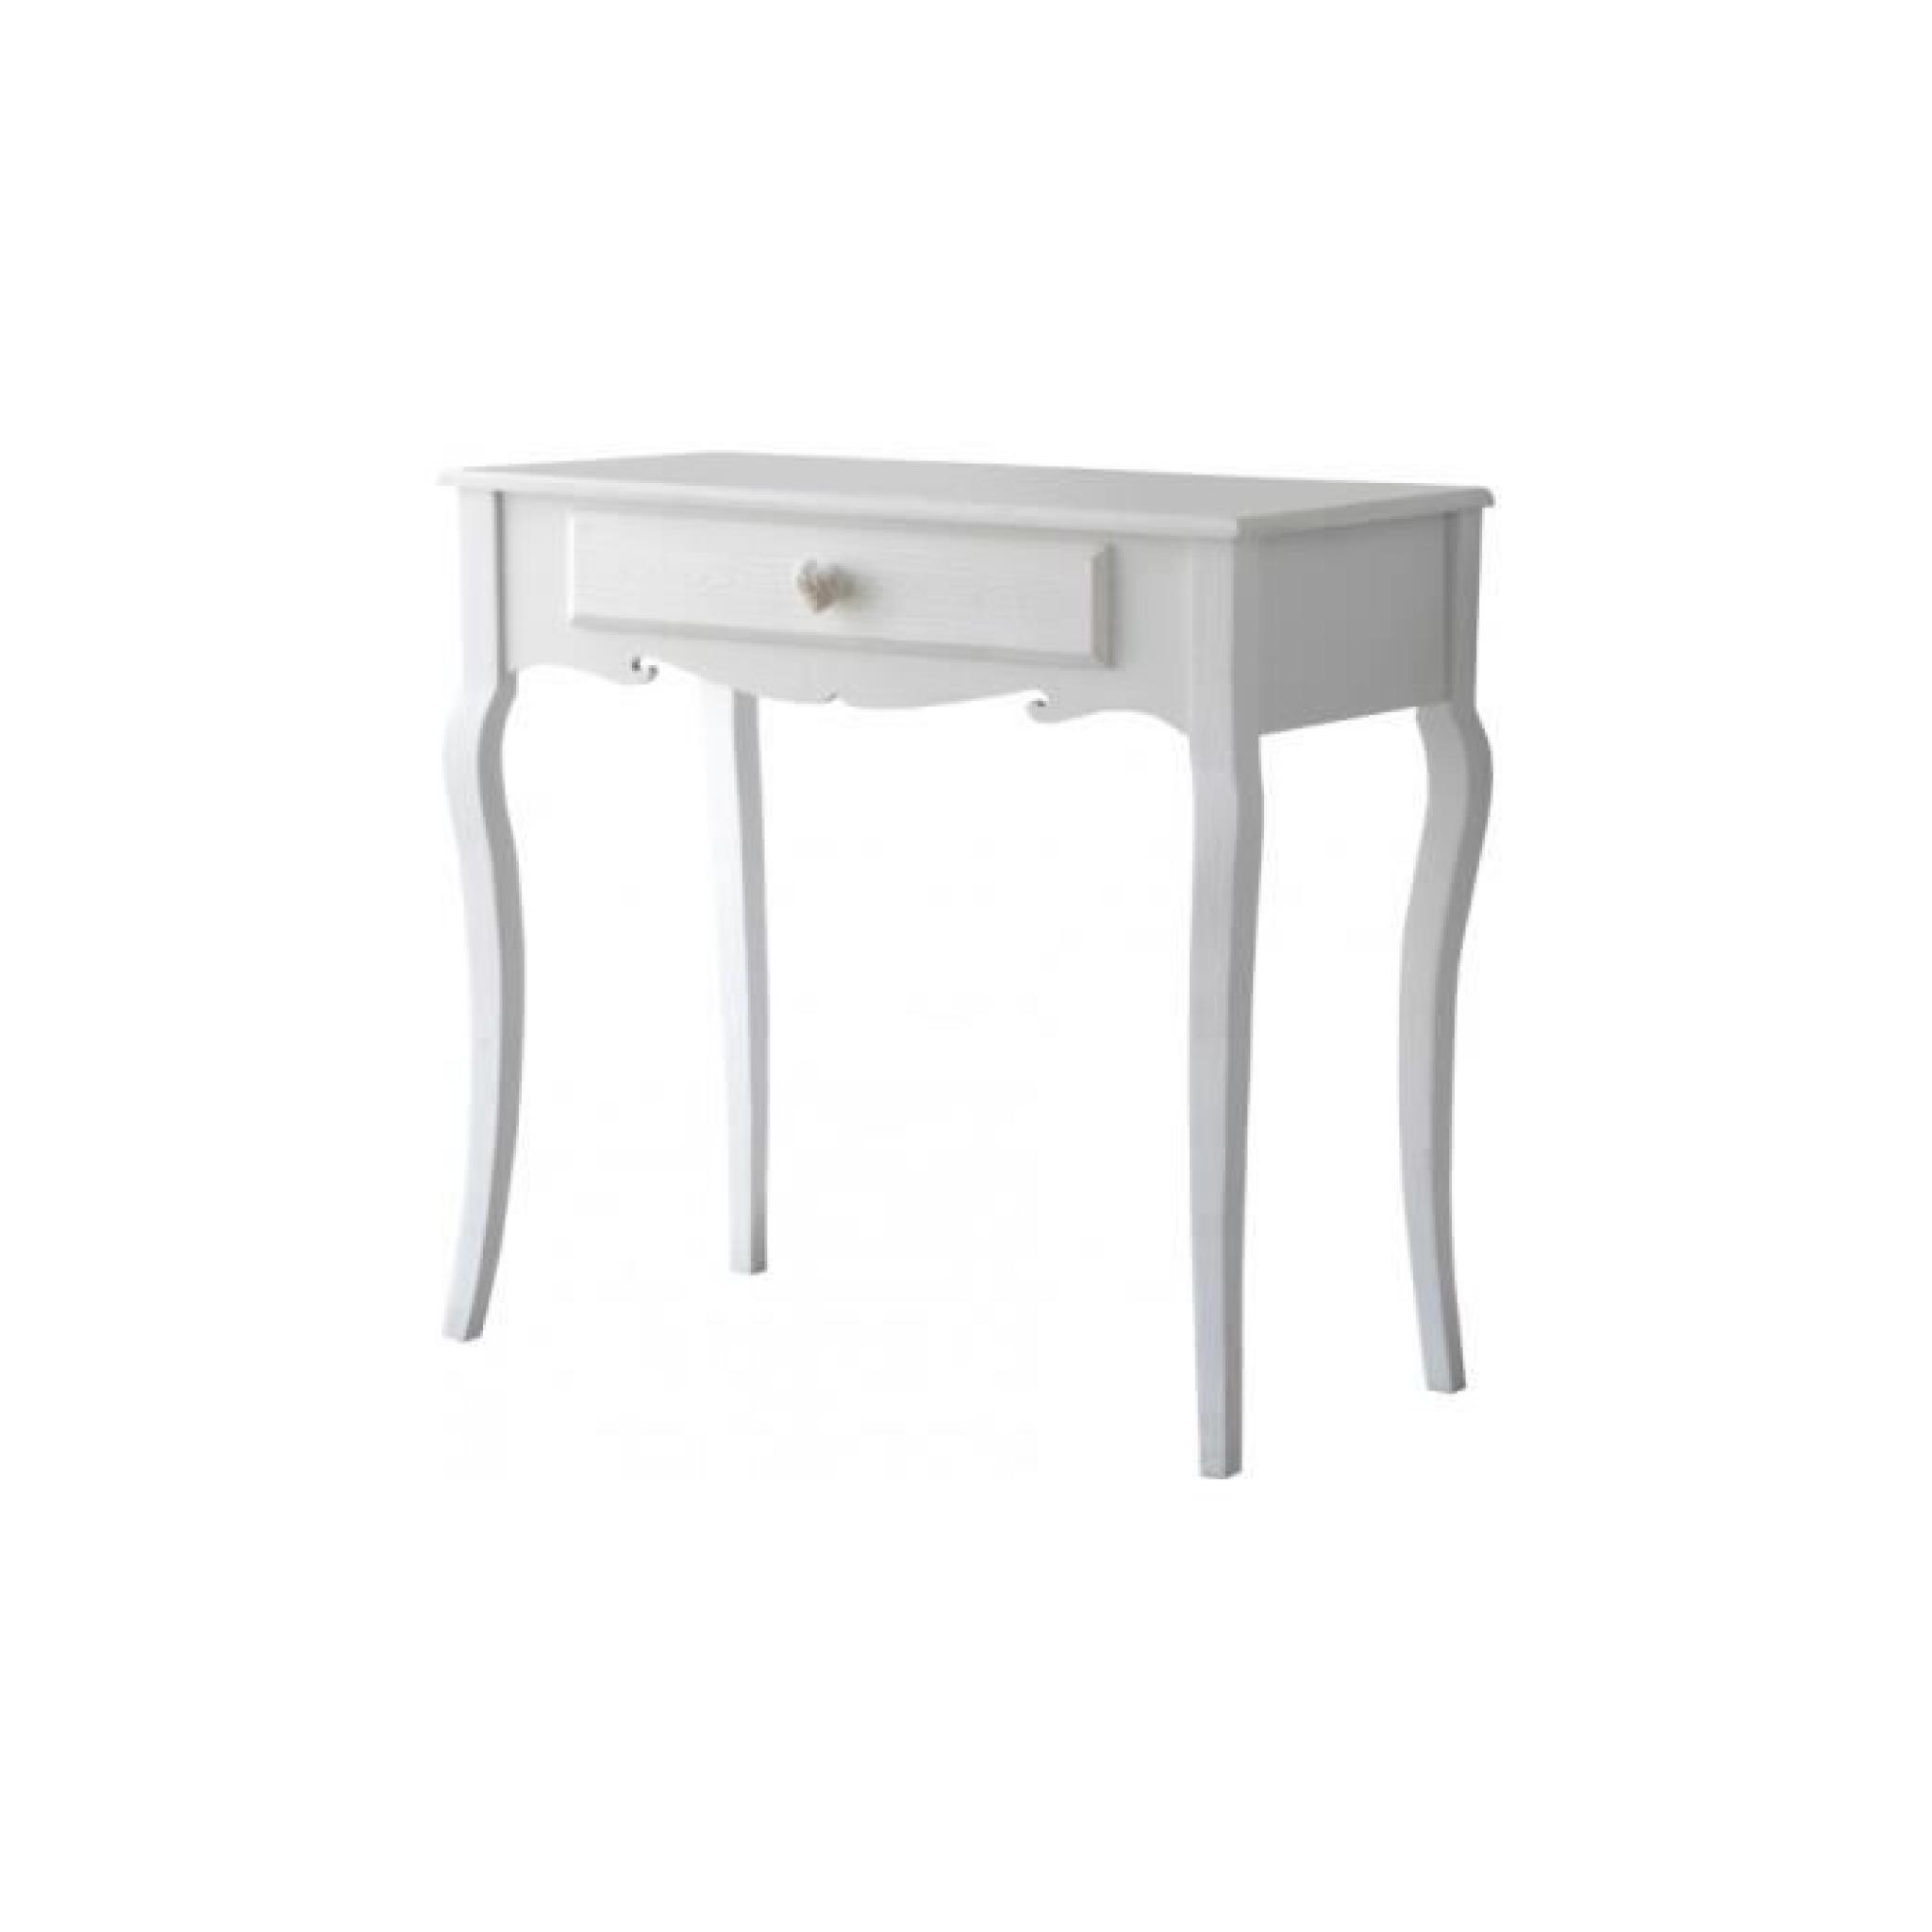 console pin massif blanc 1 tiroir pieds galb s achat. Black Bedroom Furniture Sets. Home Design Ideas